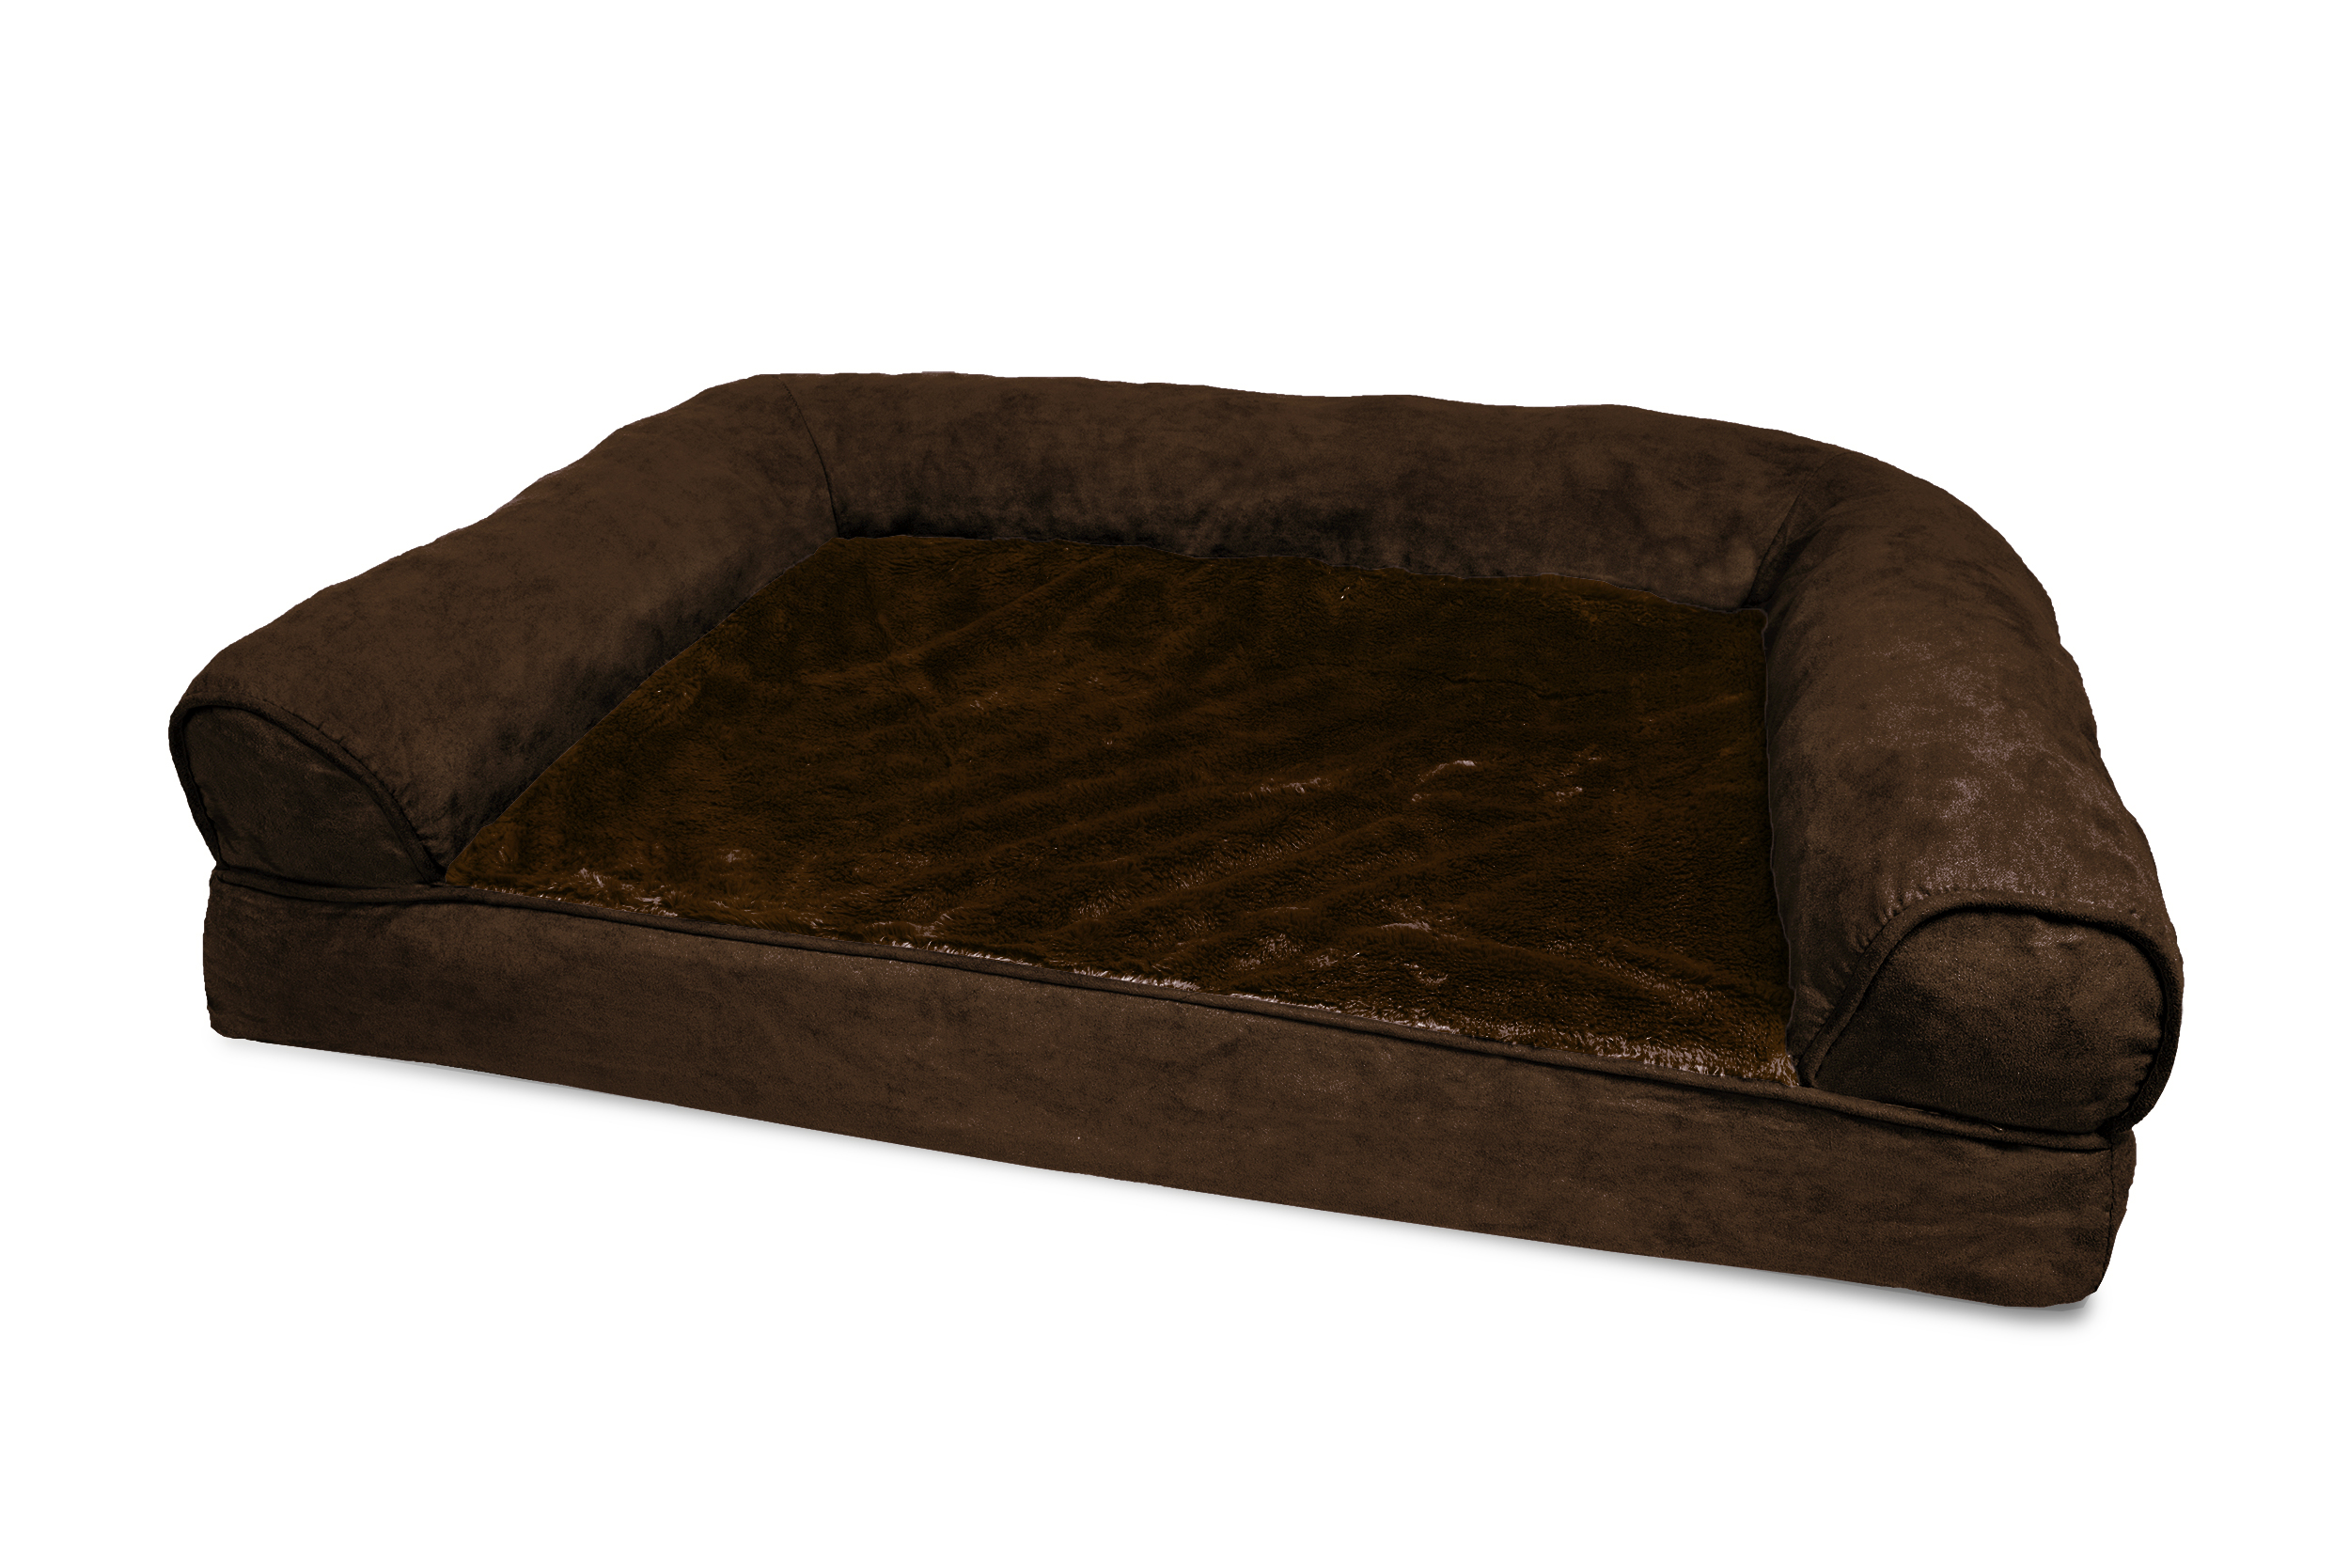 furhaven plush suede orthopedic dog sofa bed pet bed ebay With furhaven plush sofa pet bed